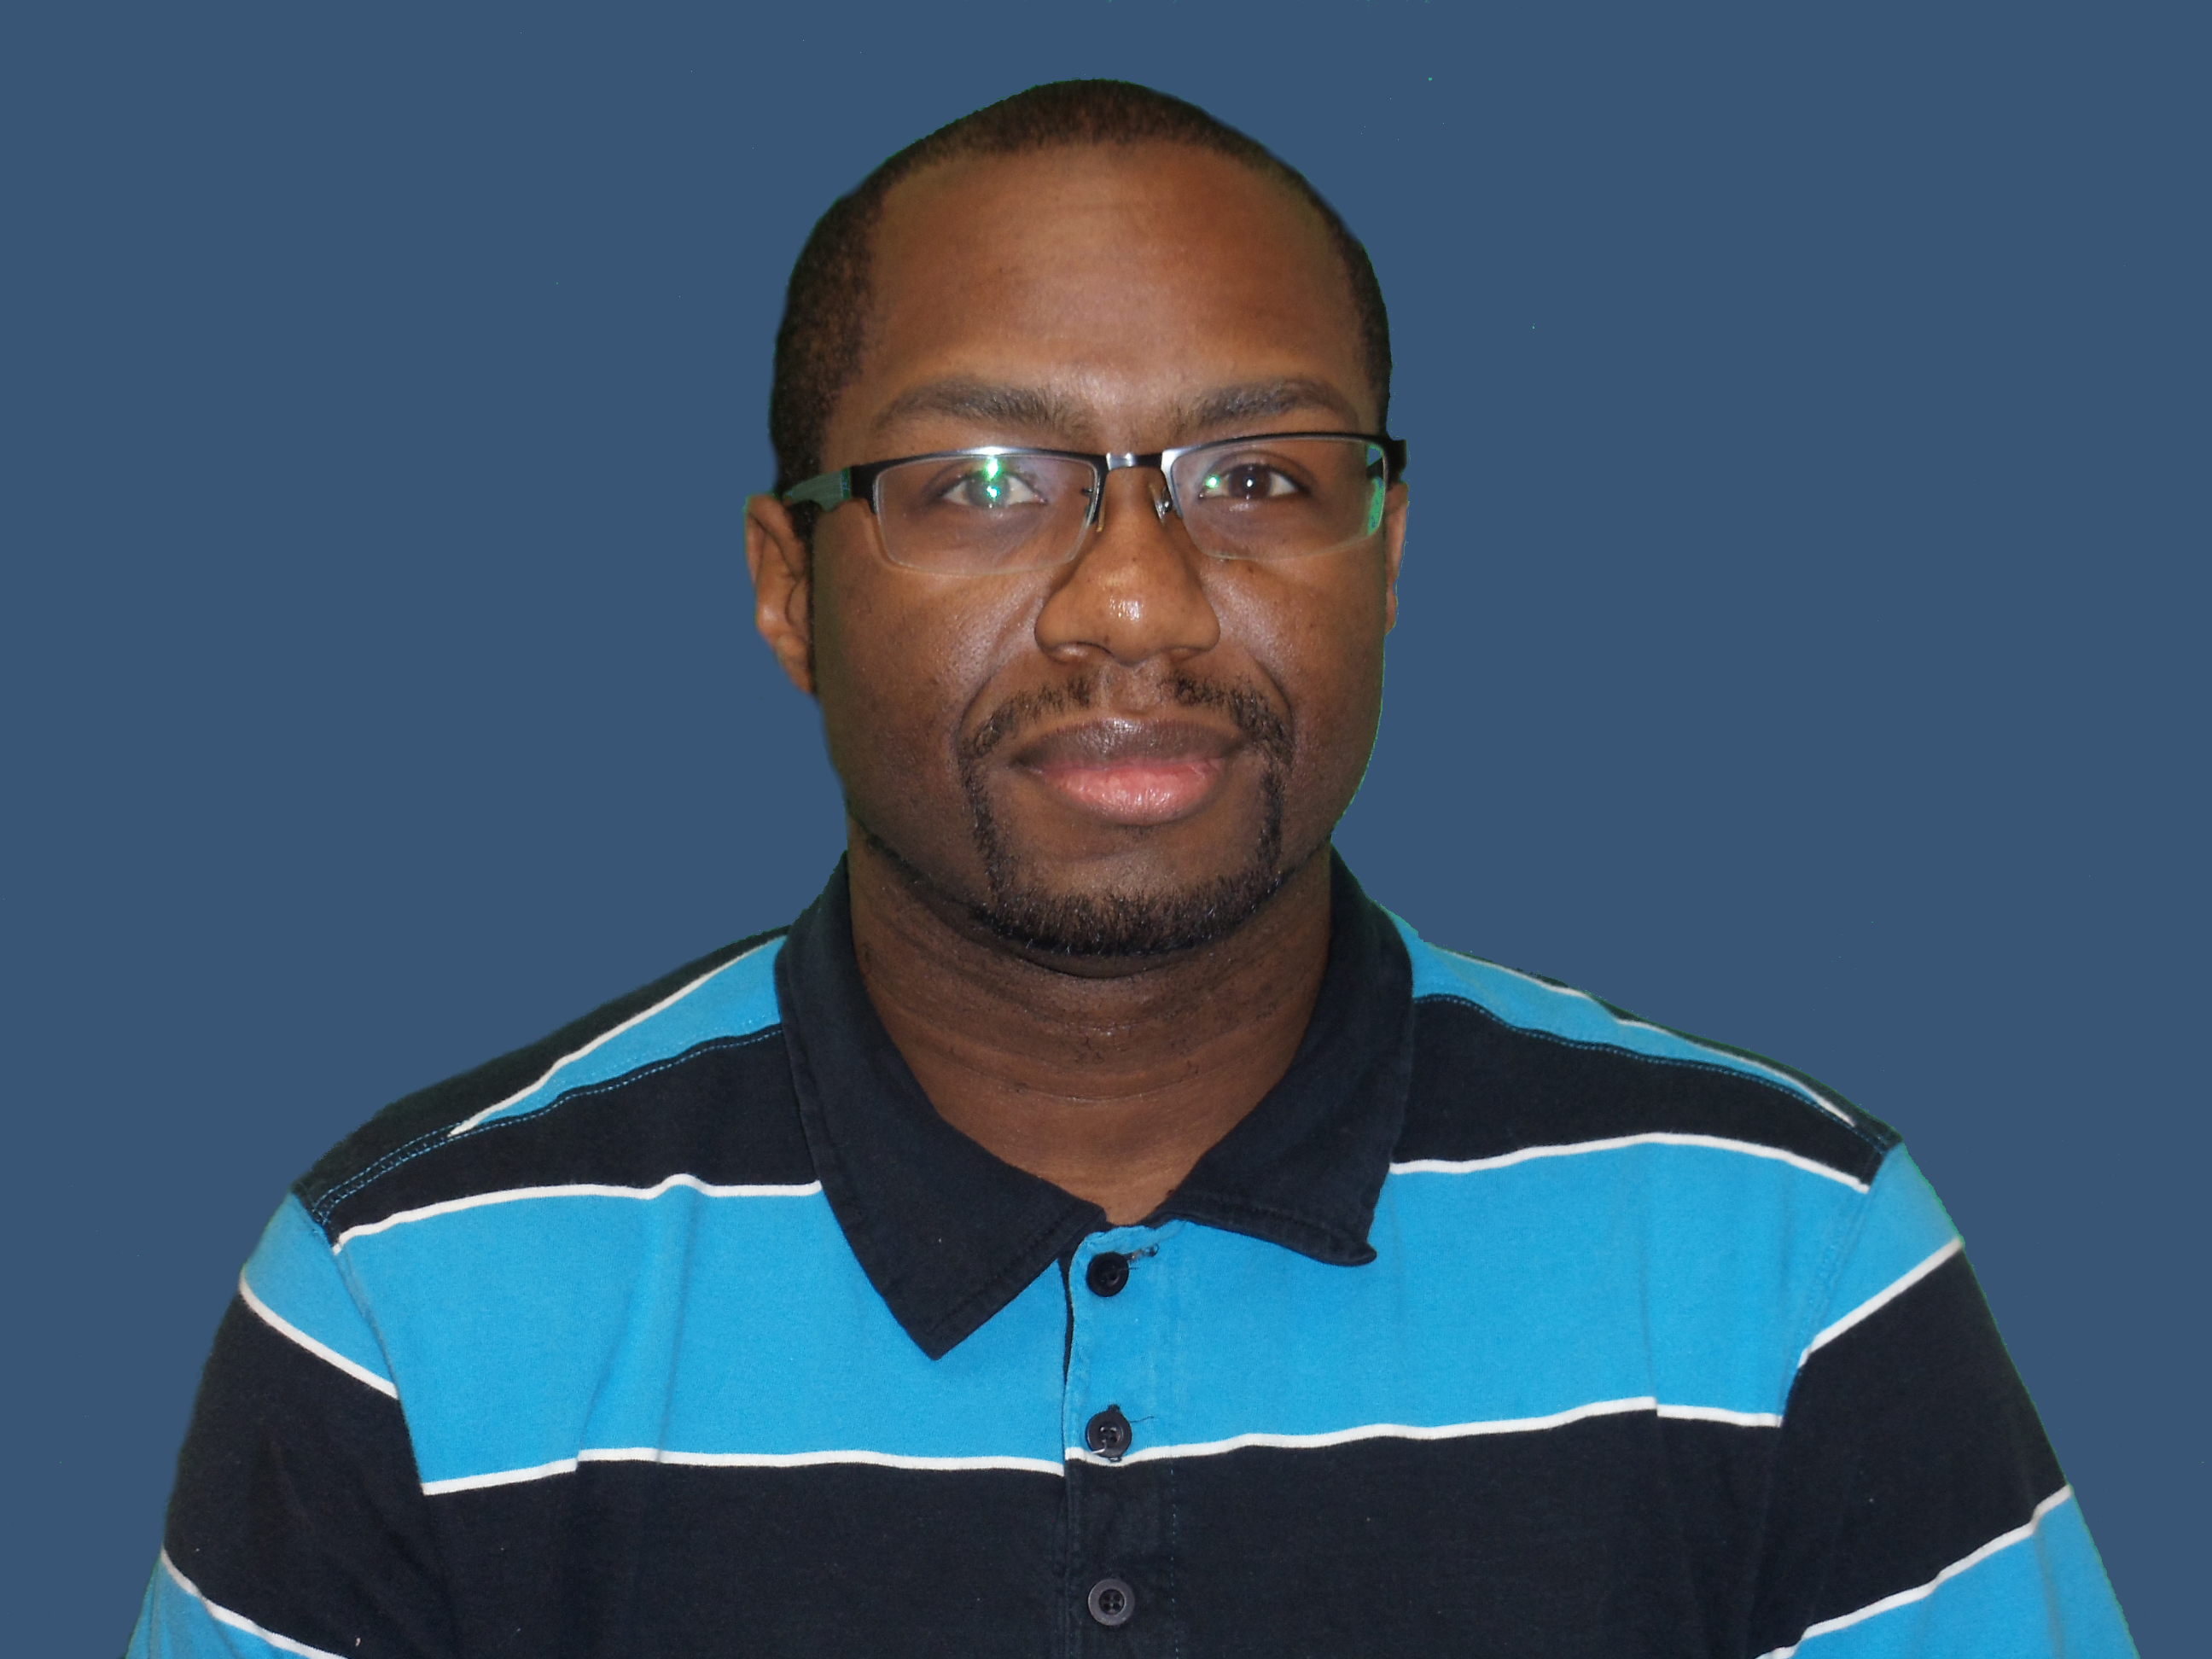 Tyrell Hobbs, Administrative Assistant